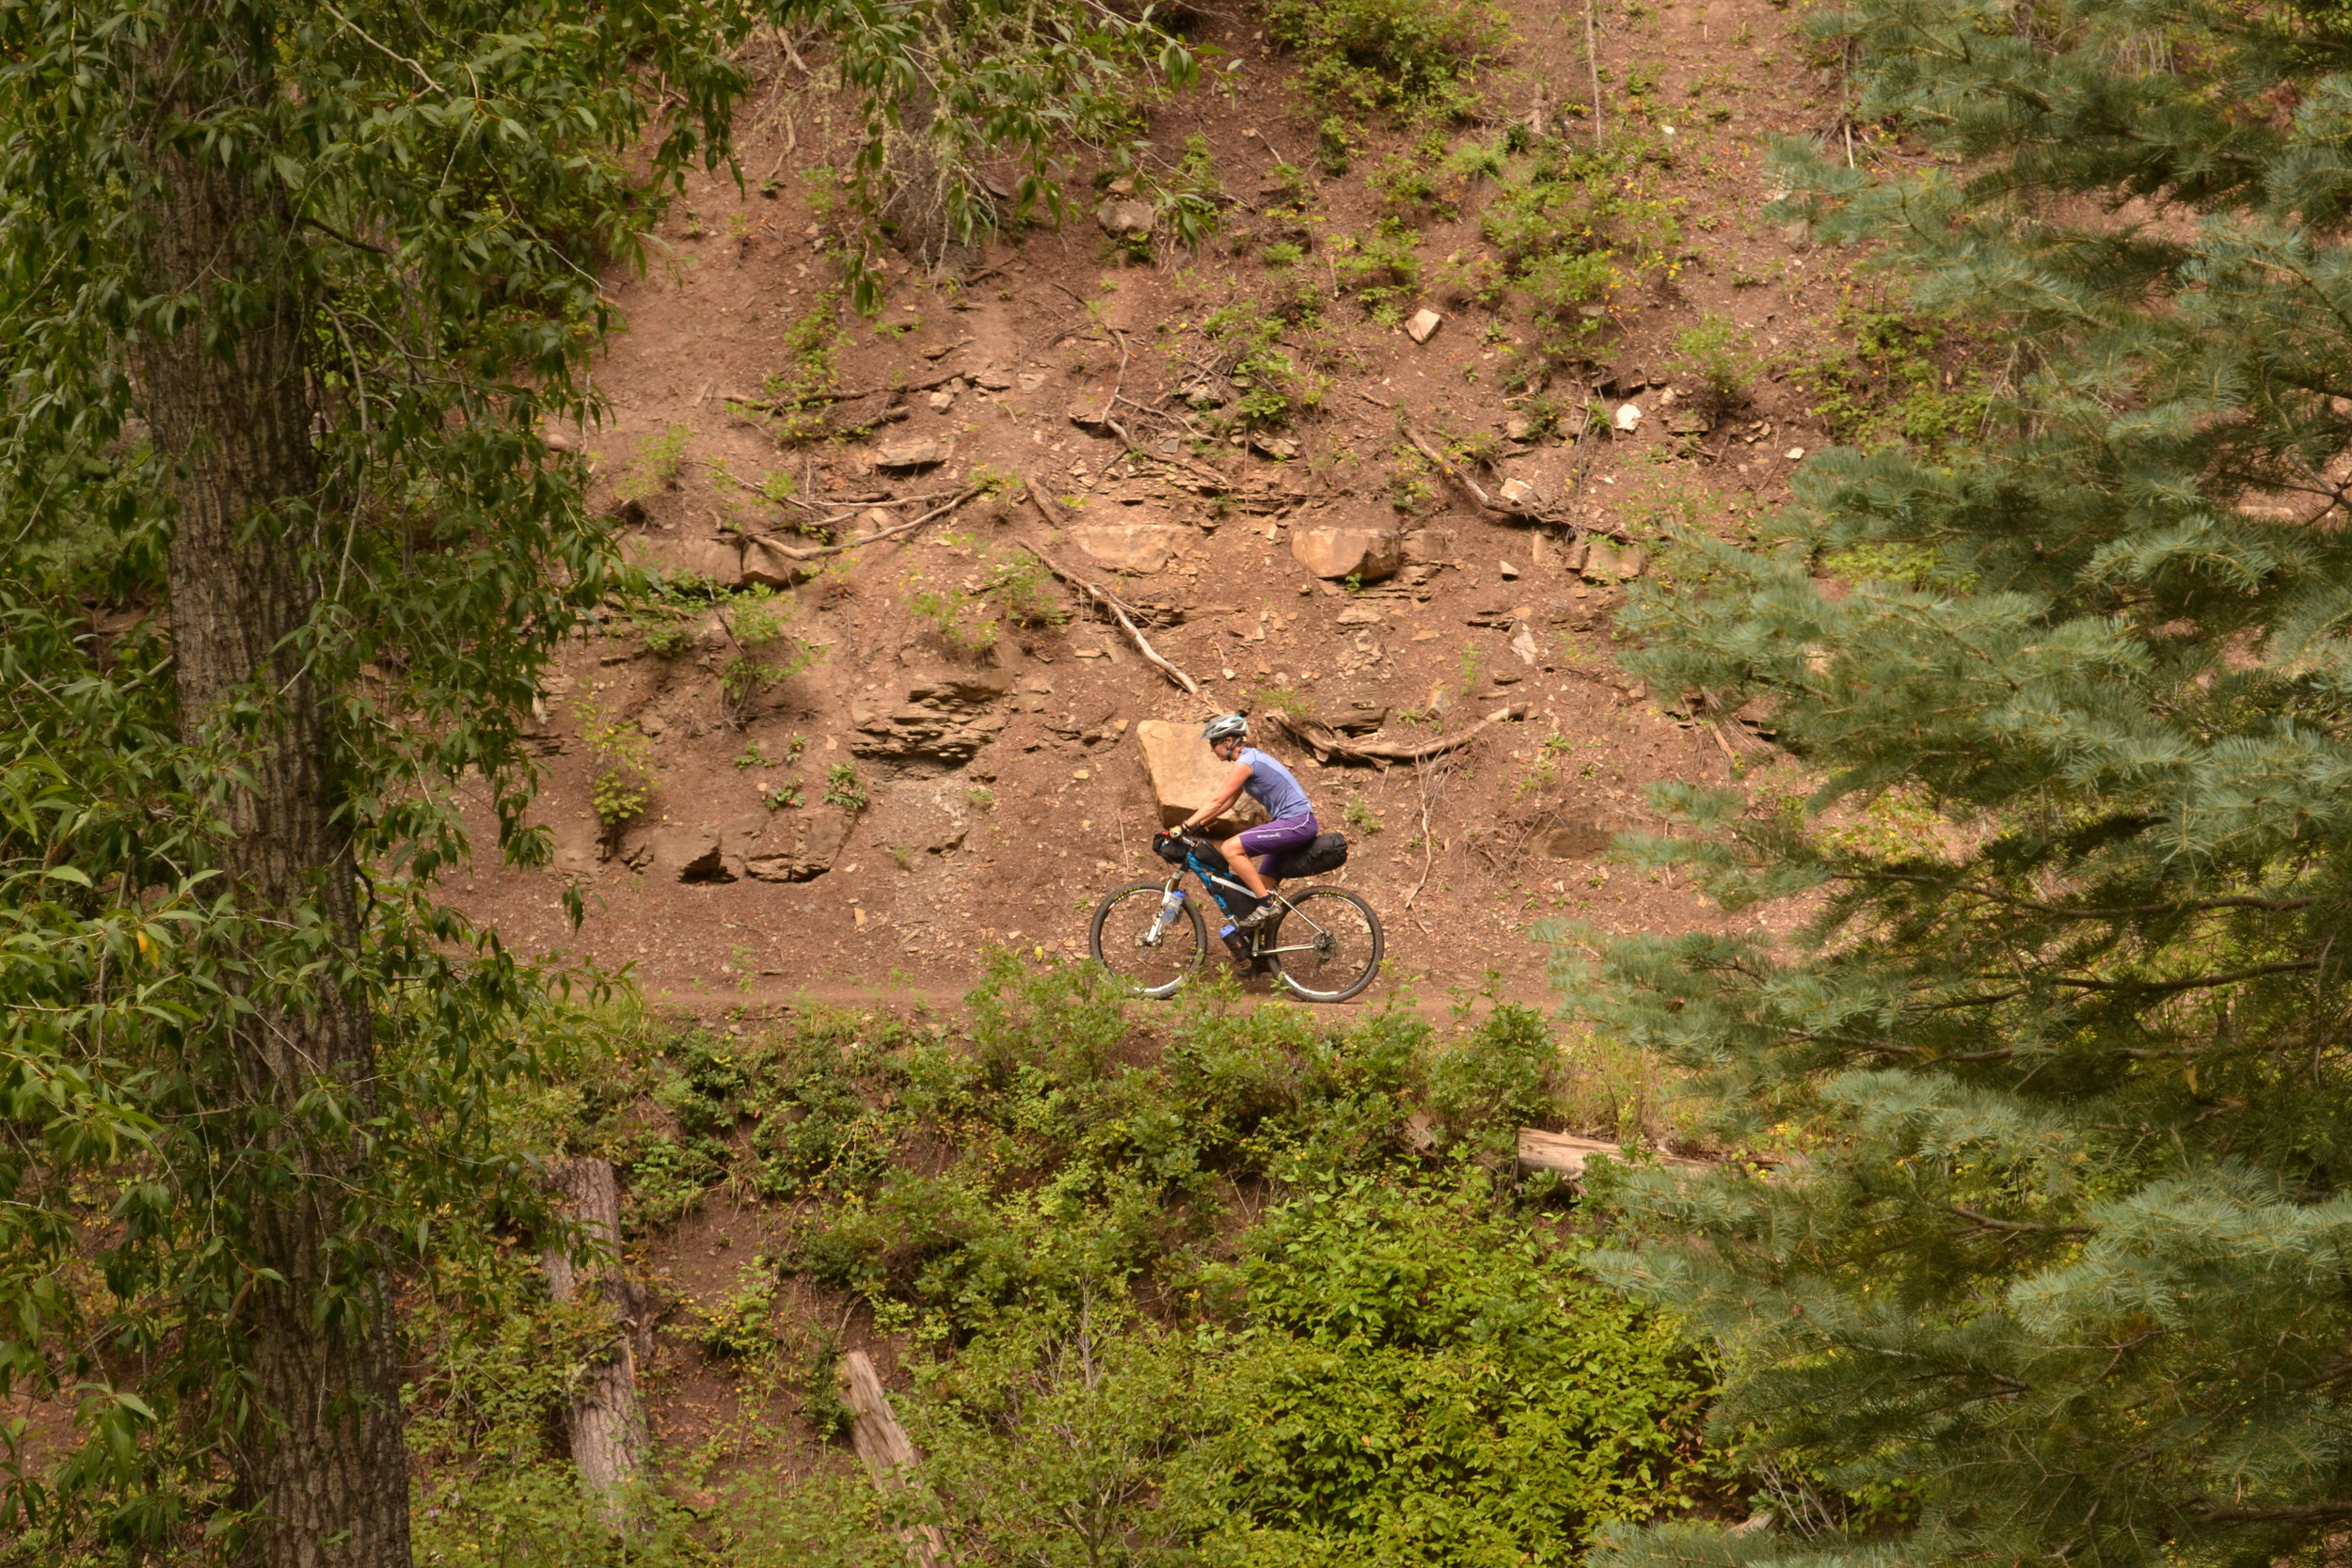 Sandhya, riding through the woods. (Photo by Brian Hanson)